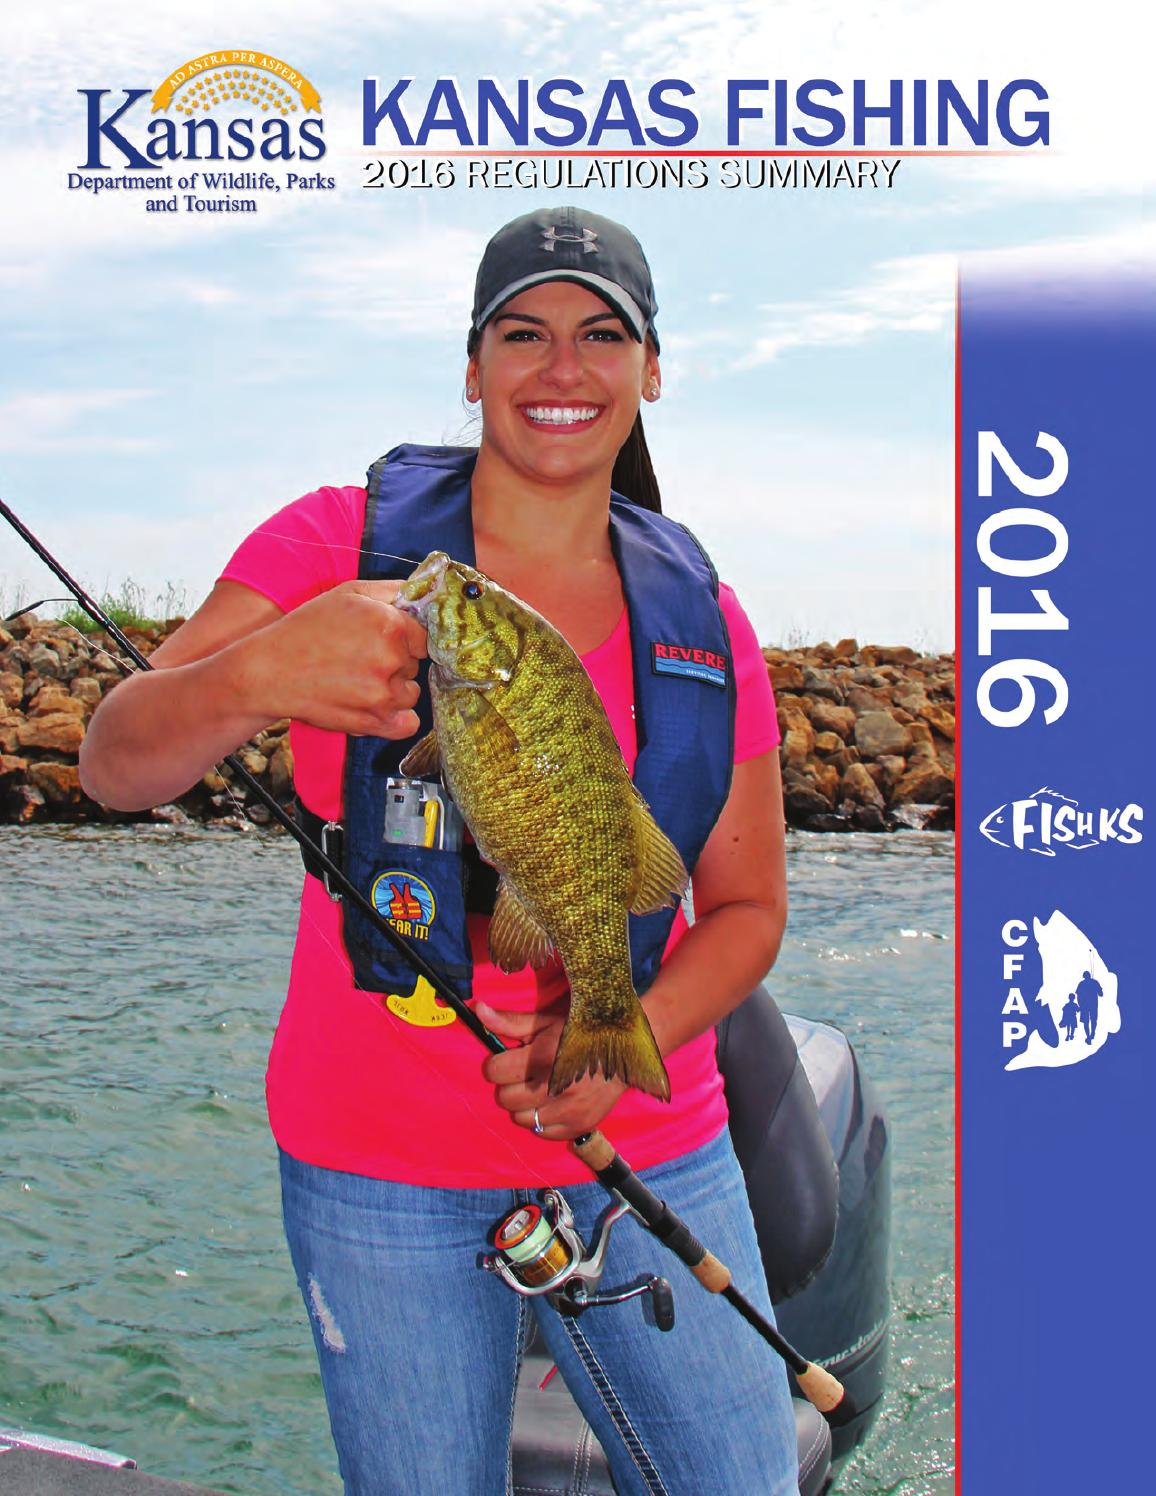 2016 kansas fishing regulations by kansas department of for Kansas fishing regulations